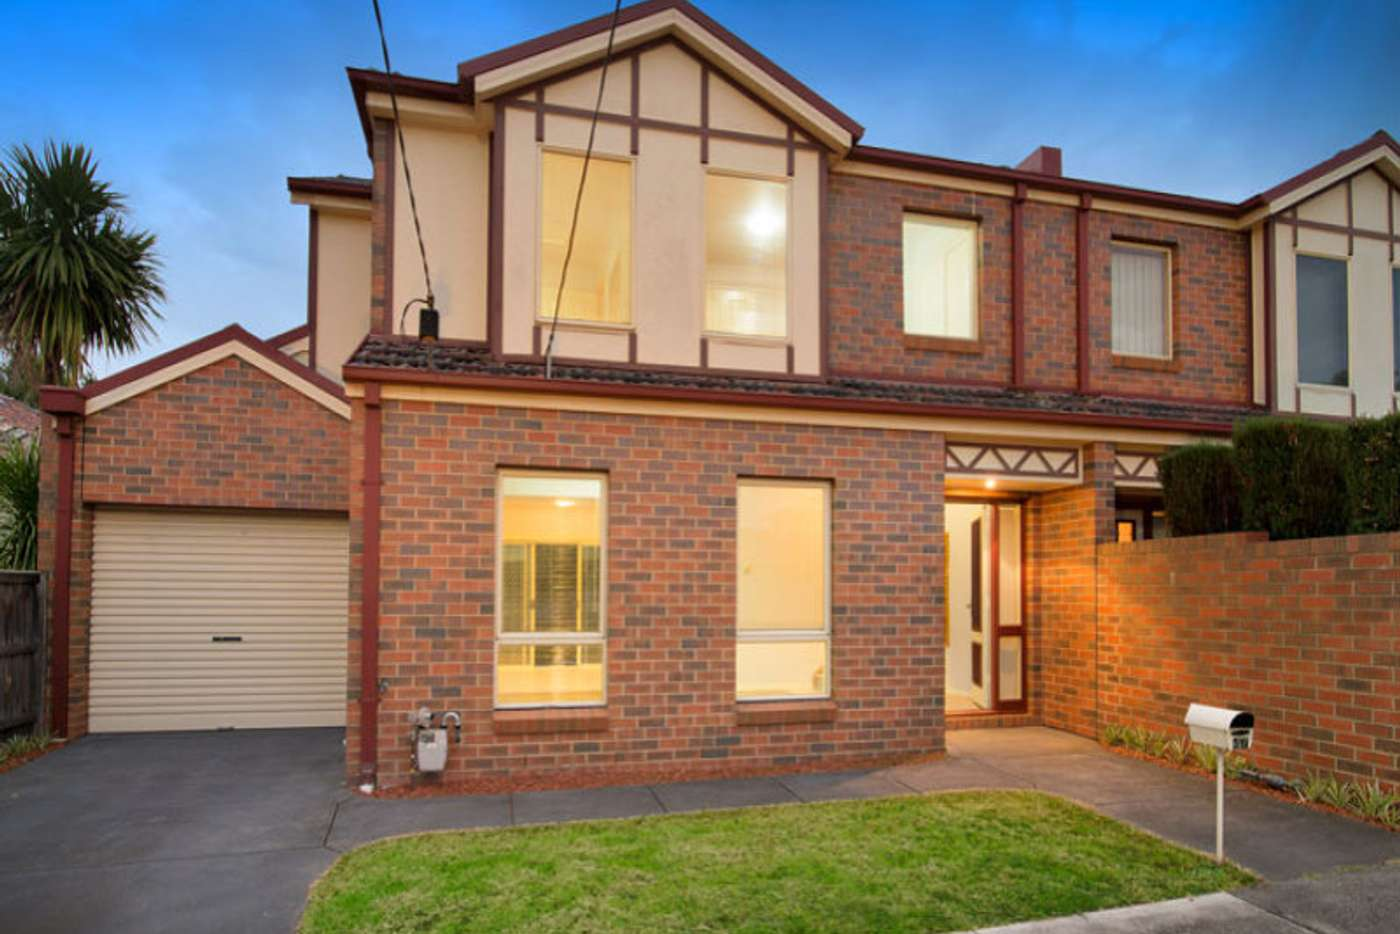 Main view of Homely house listing, 47 O'Keefe Street, Preston VIC 3072